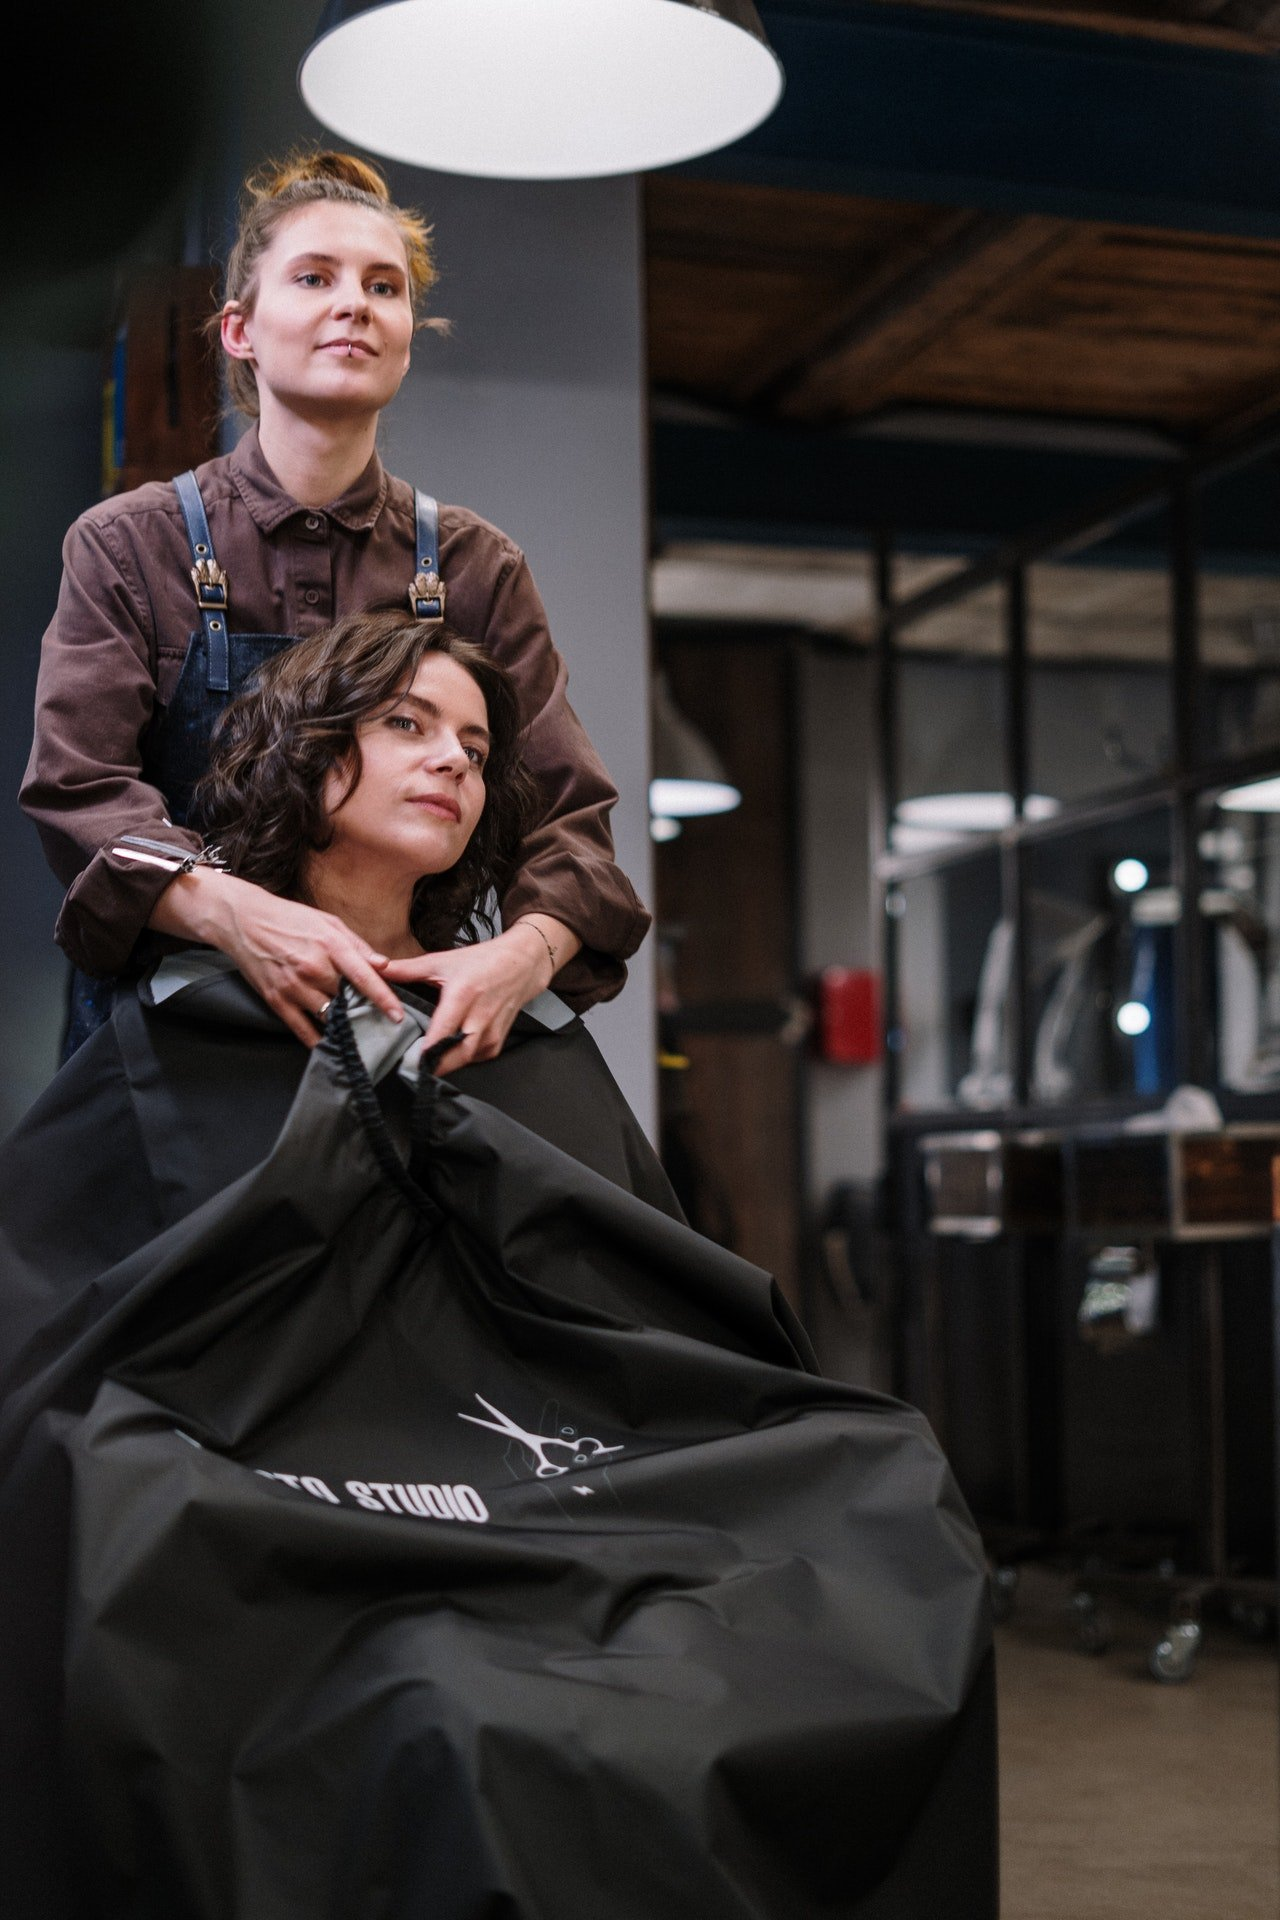 Hairdresser working on woman's hair | Photo: Pexels